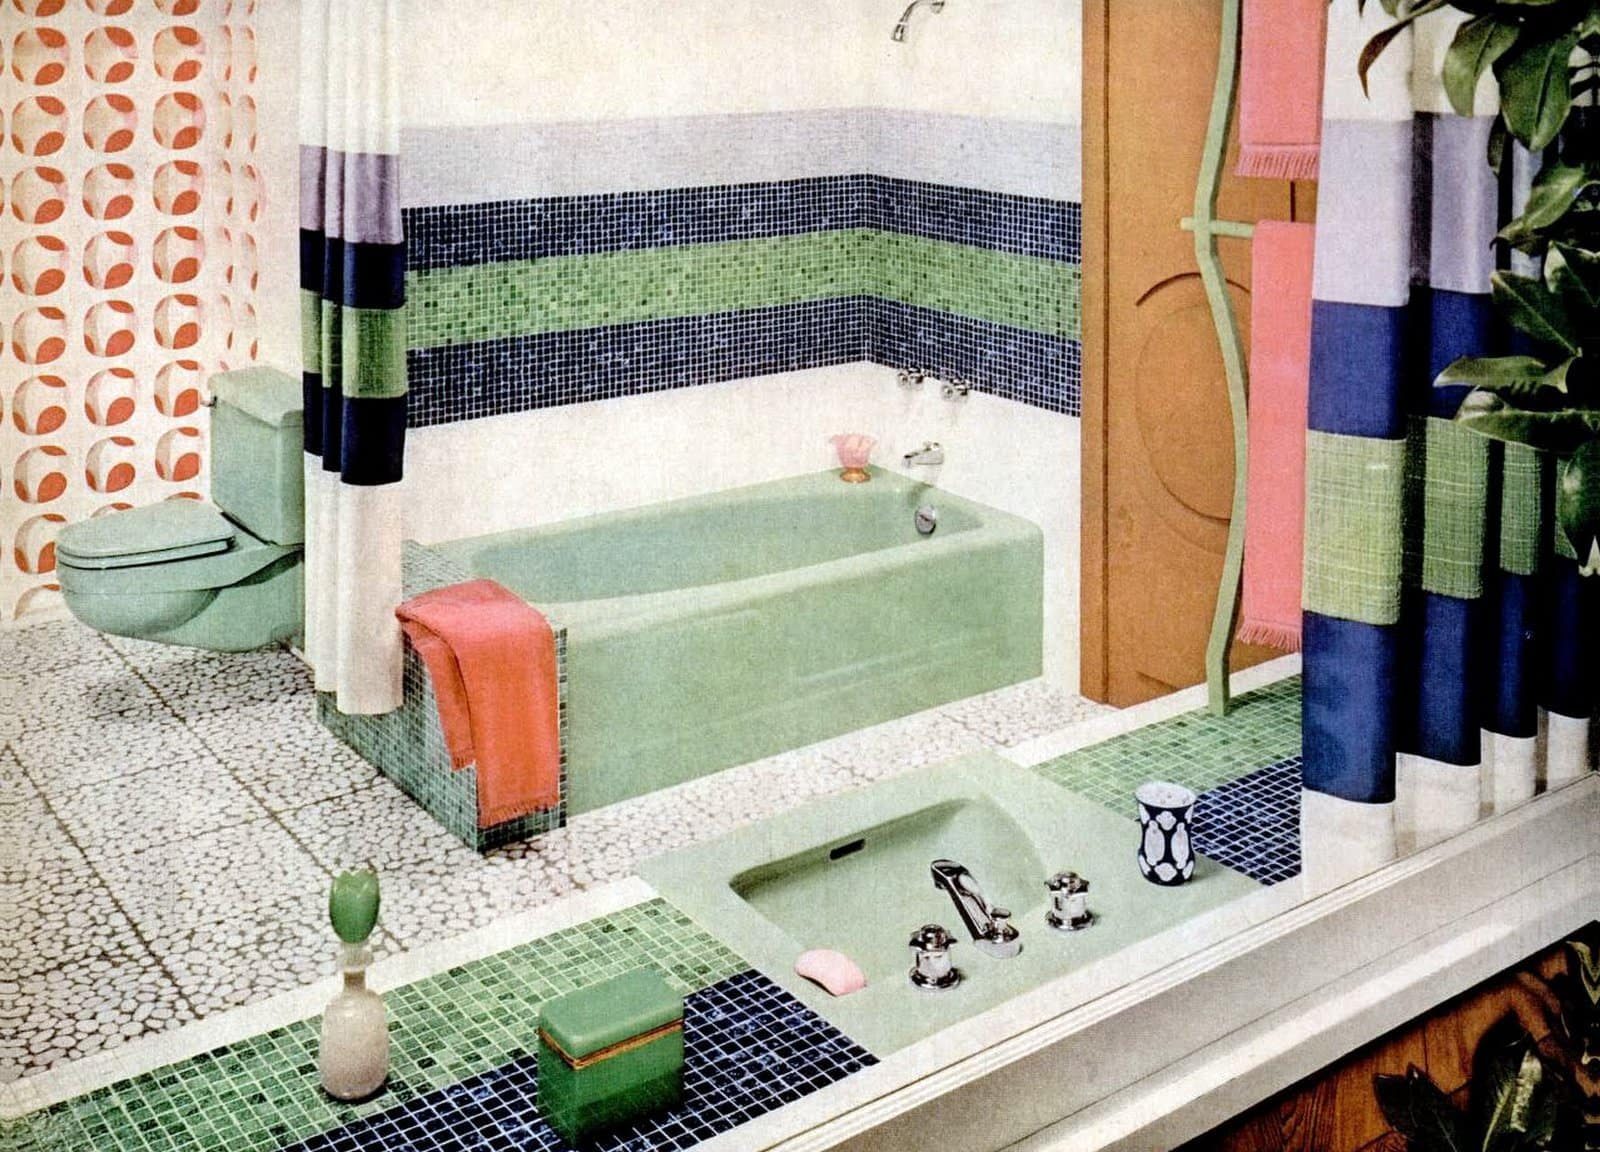 Vintage 1960 bathroom style with tile